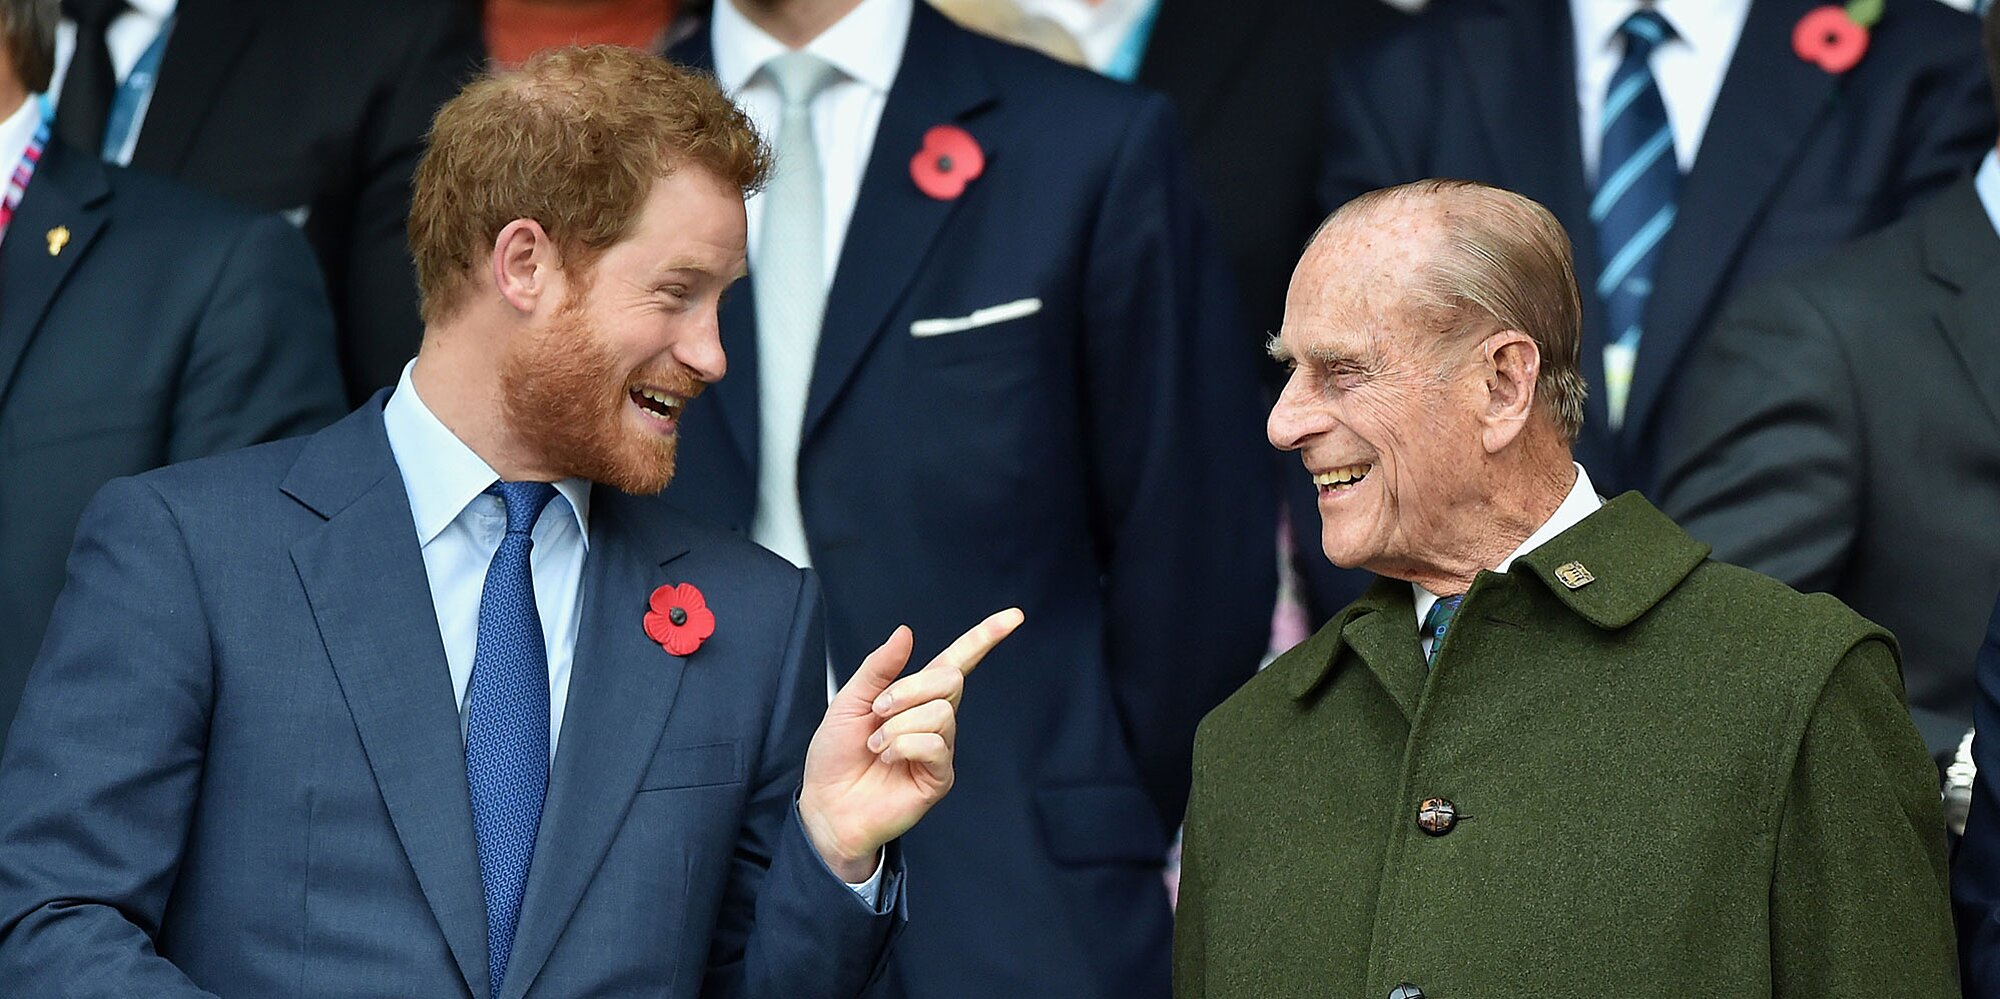 Prince Harry, Is That You? See the Vintage Photo of Prince Philip Twinning with His Grandson Again.jpg